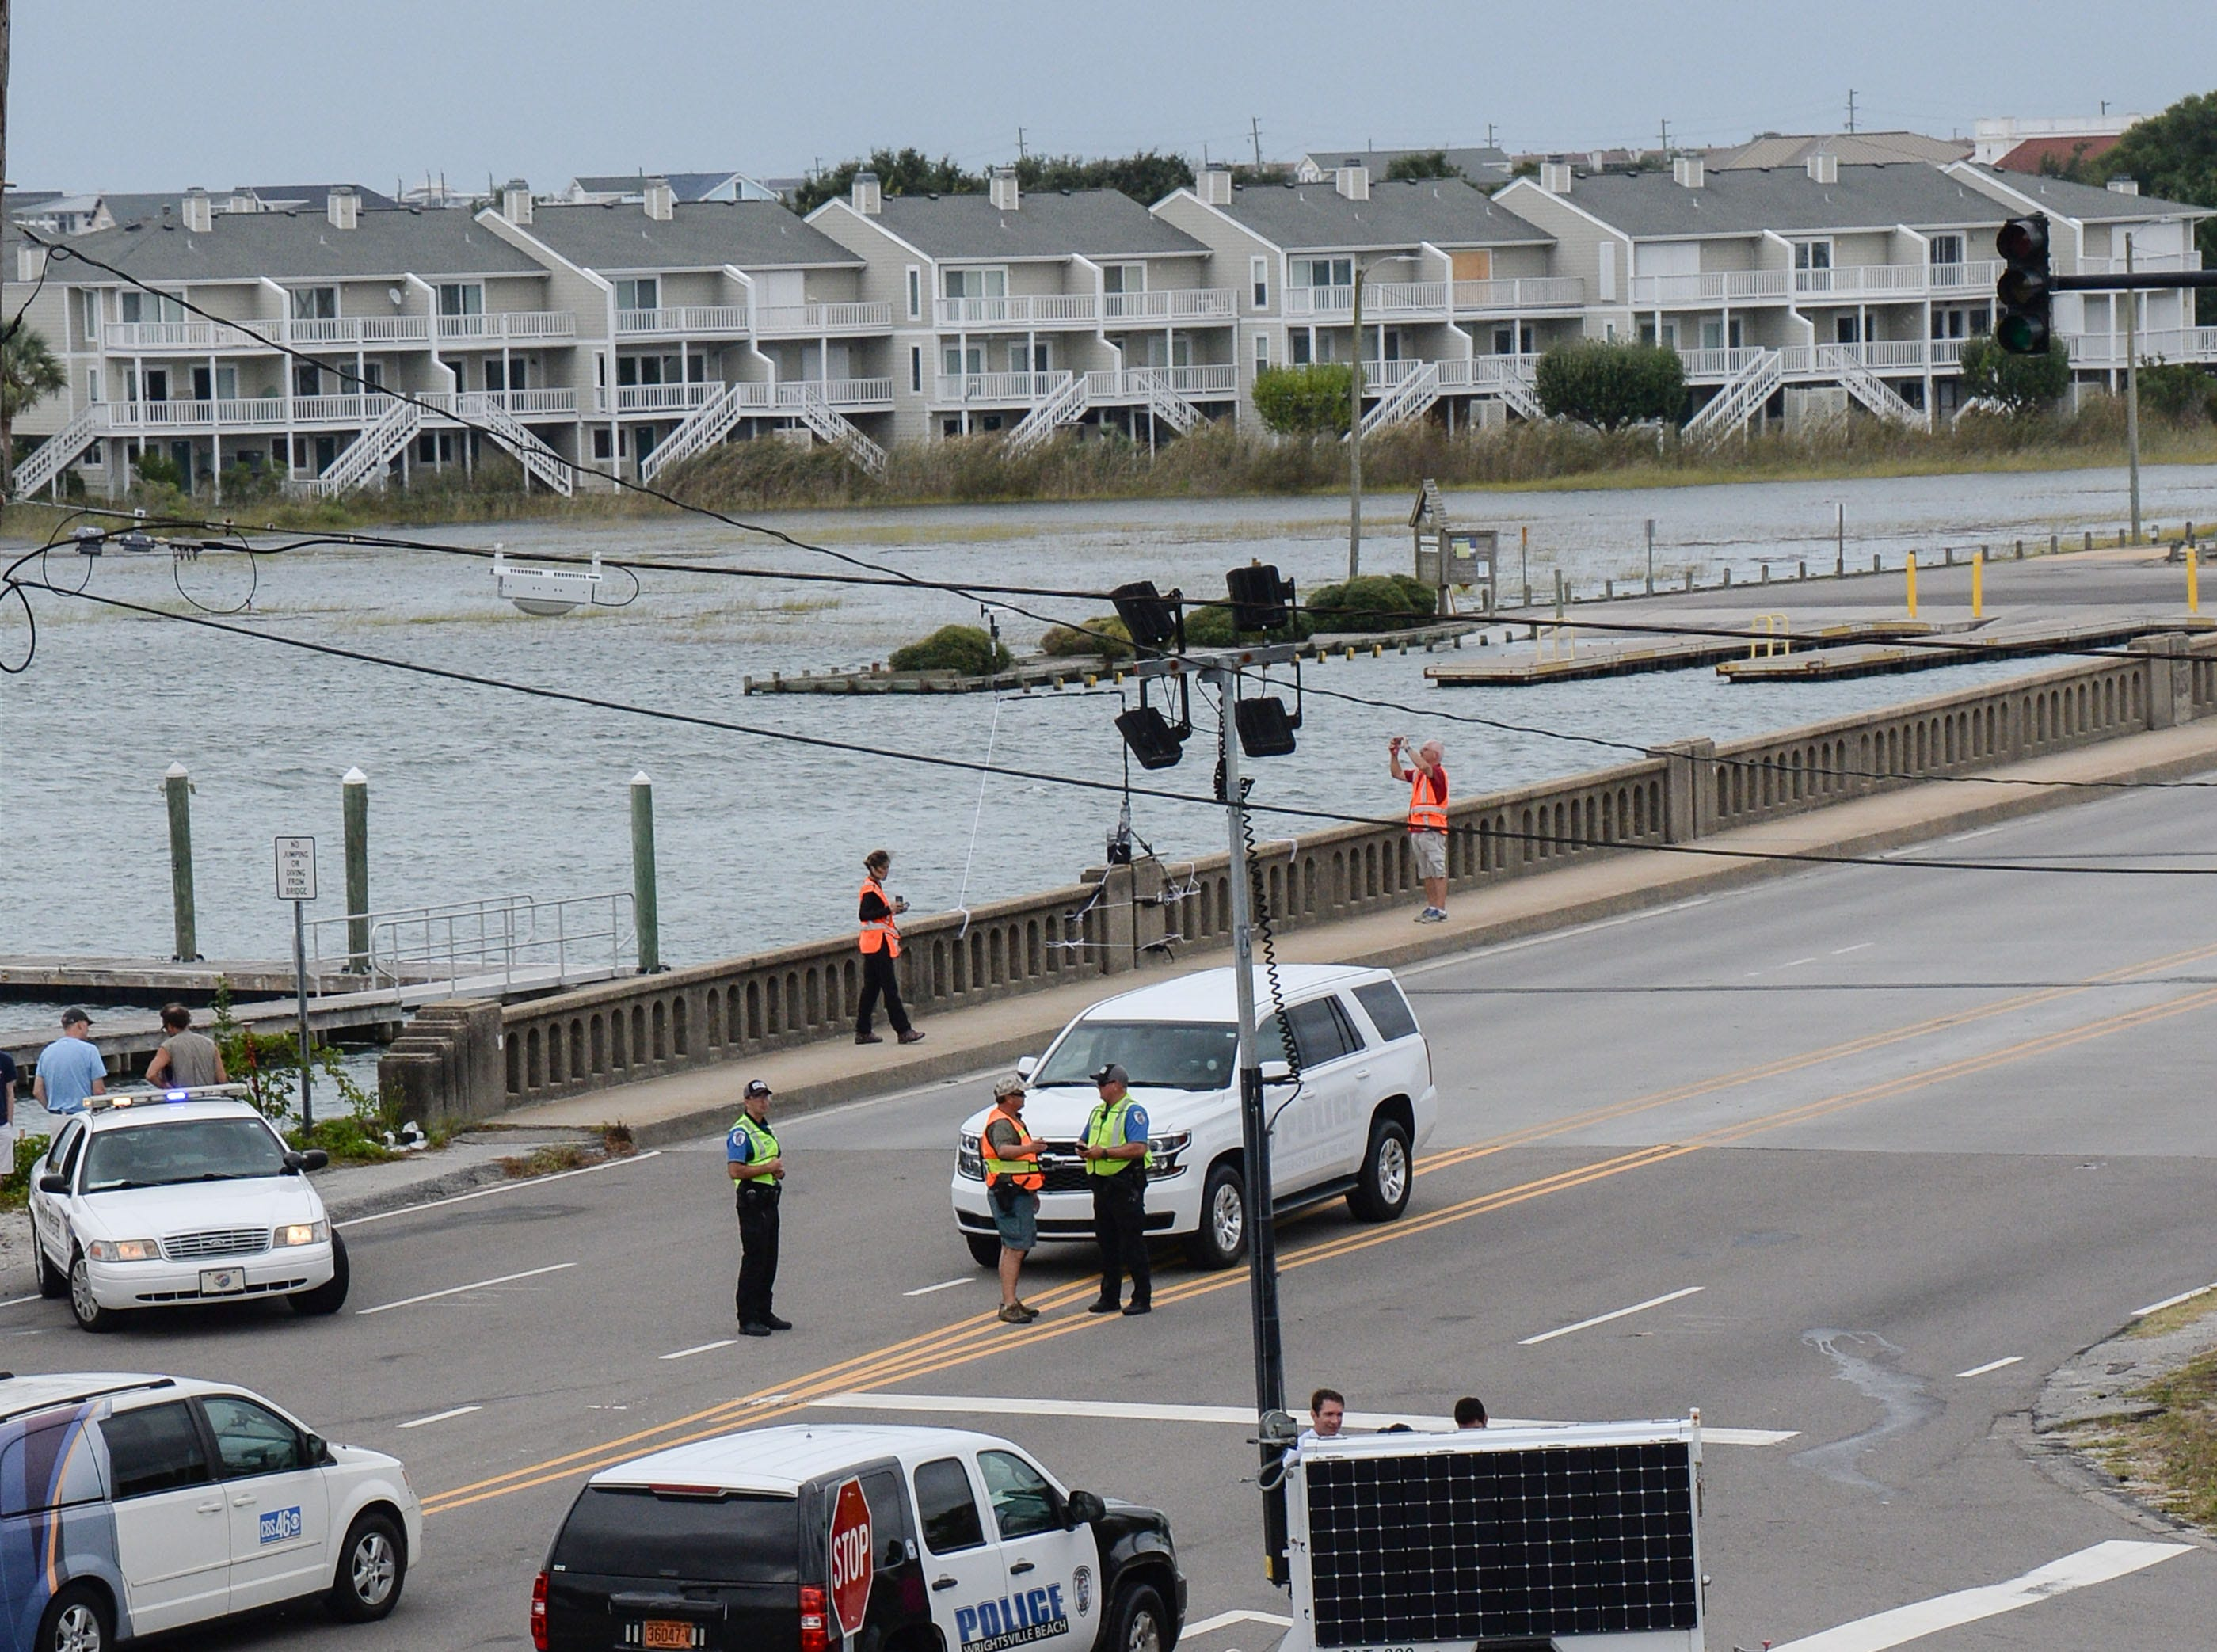 A jogger goes by a roadblock at a bridge to Wrightsville Beach and the Waterway Lodge in Wilmington, North Carolina on Thursday, September 13, 2018. Freed arrived Tuesday. (Ken Ruinard / Greenville News / Gannett USA Today Network / 2018 )